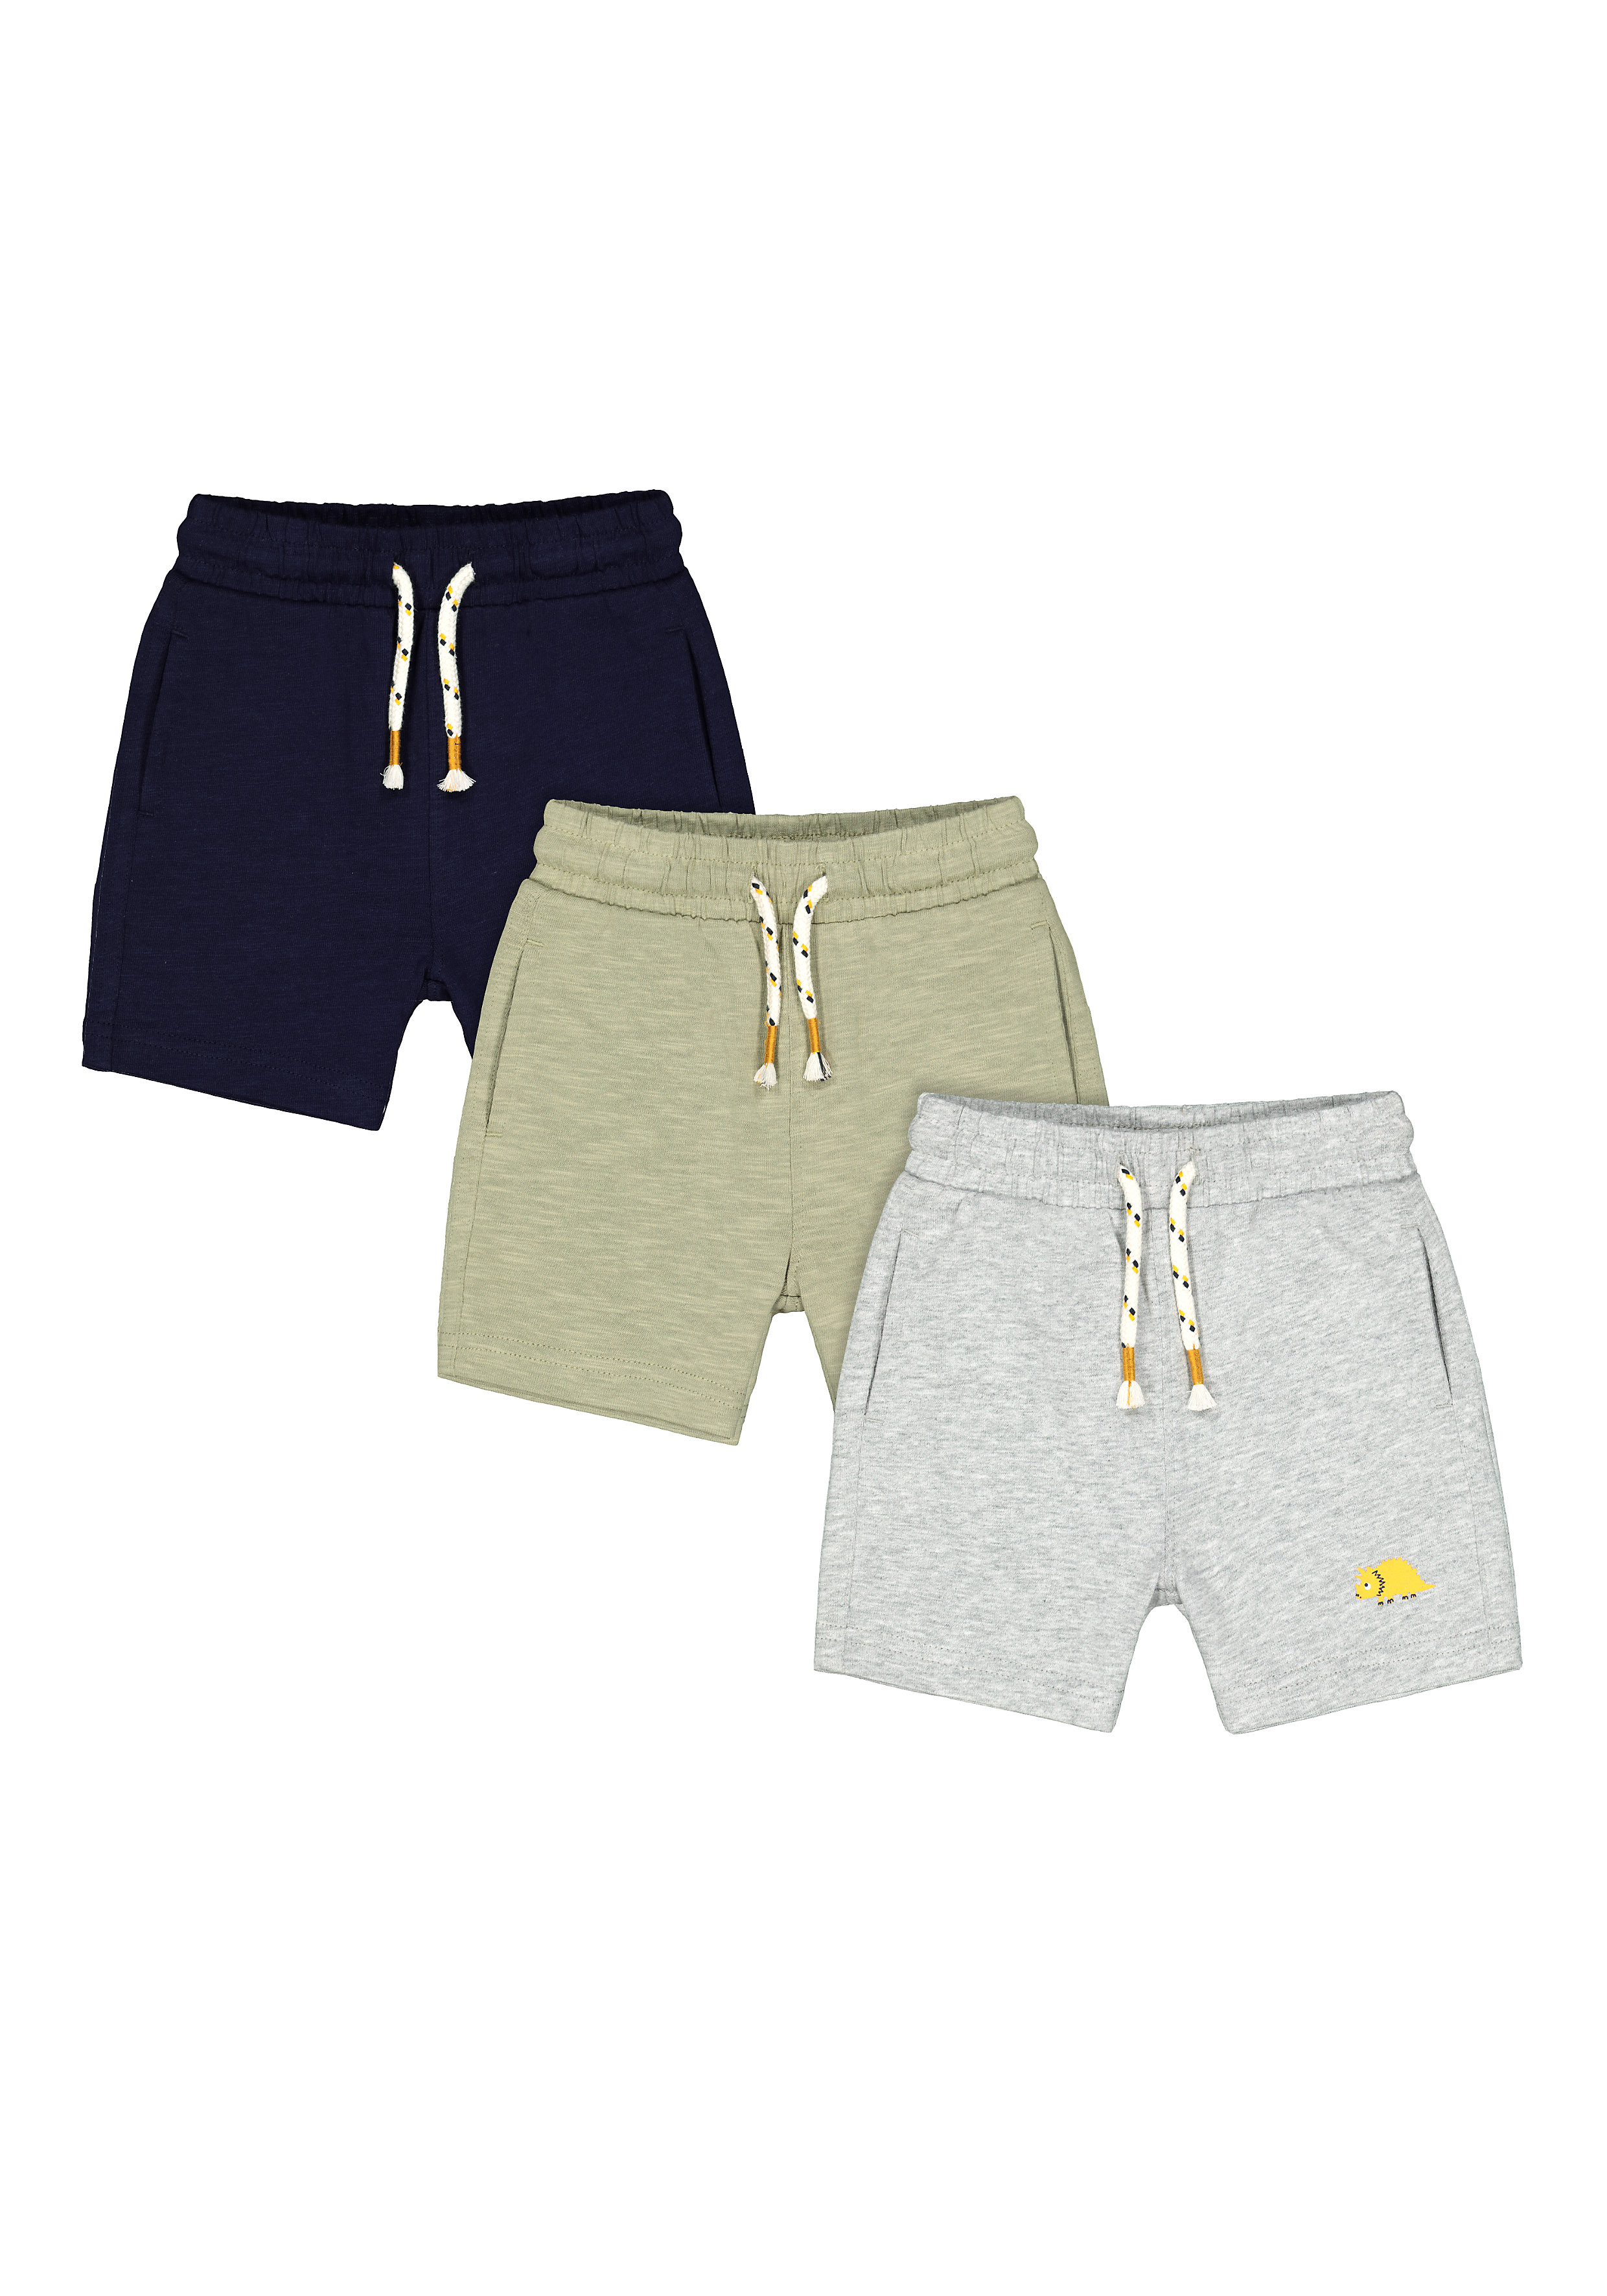 Mothercare | Boys Knitted Shorts Dino Print - Pack Of 3 - Multicolor